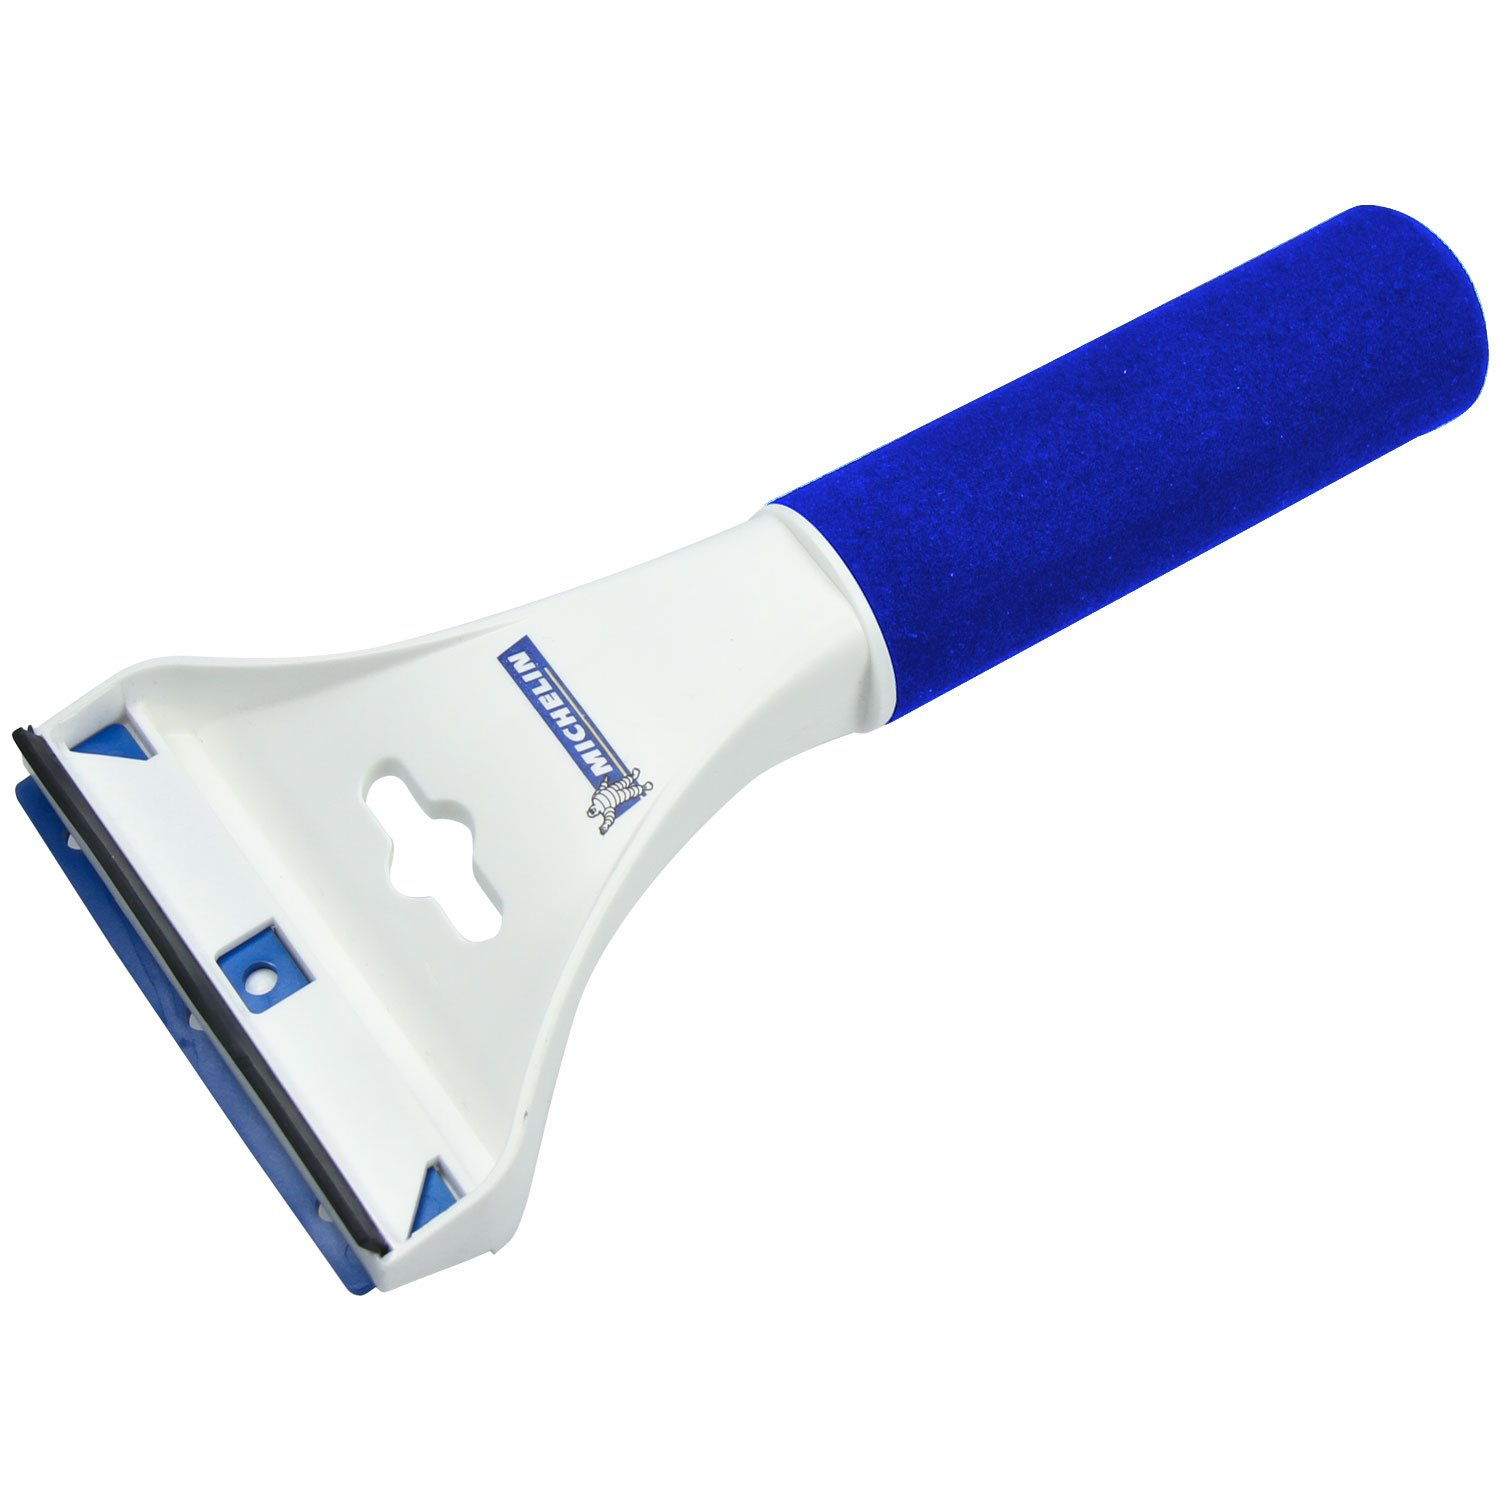 Michelin 92100 Ice scraper made of high-impact proof polystyrene - Blue/white